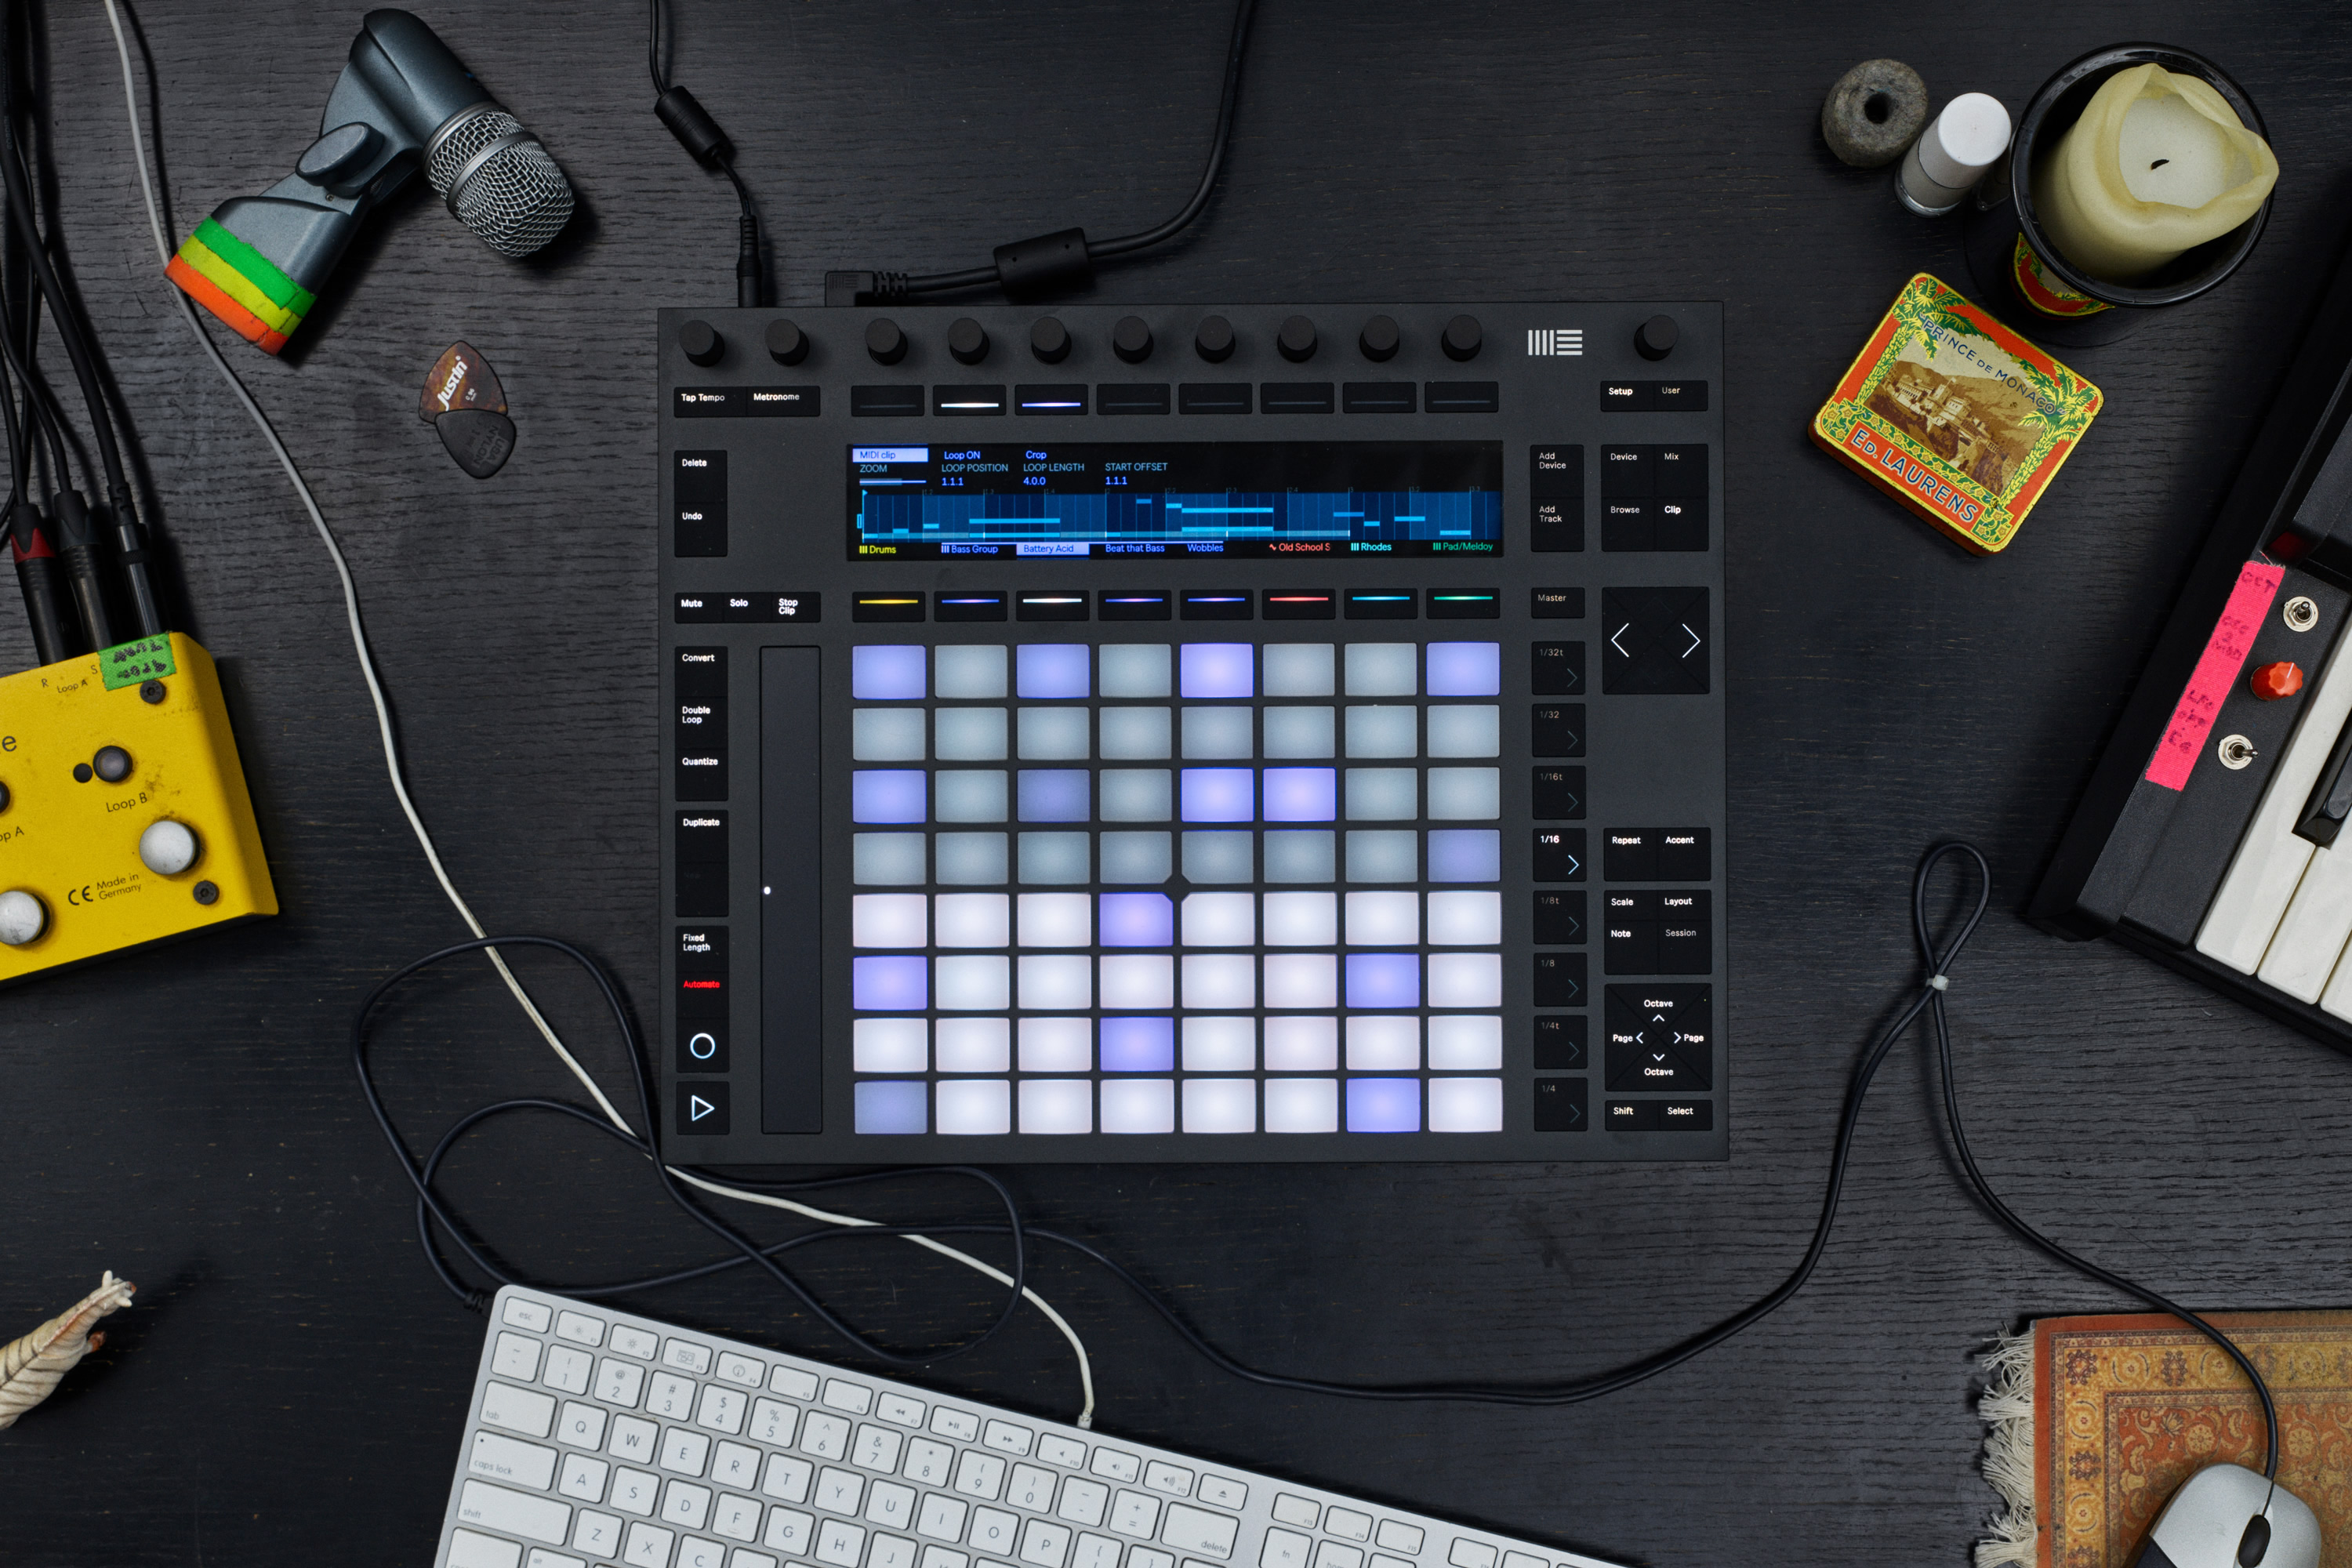 Ableton Live 10 — What's New?